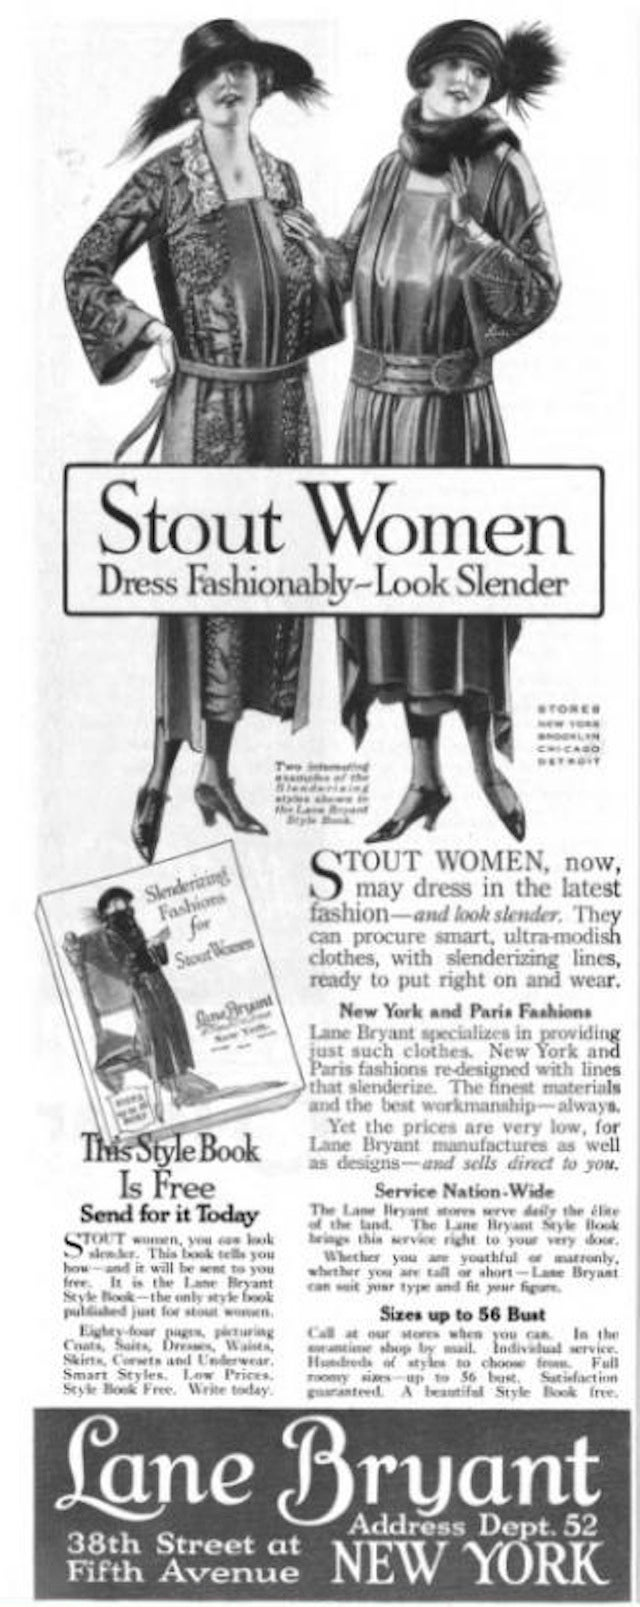 1922 Ad Touts Lane Bryant's Offerings for 'Stout Women'